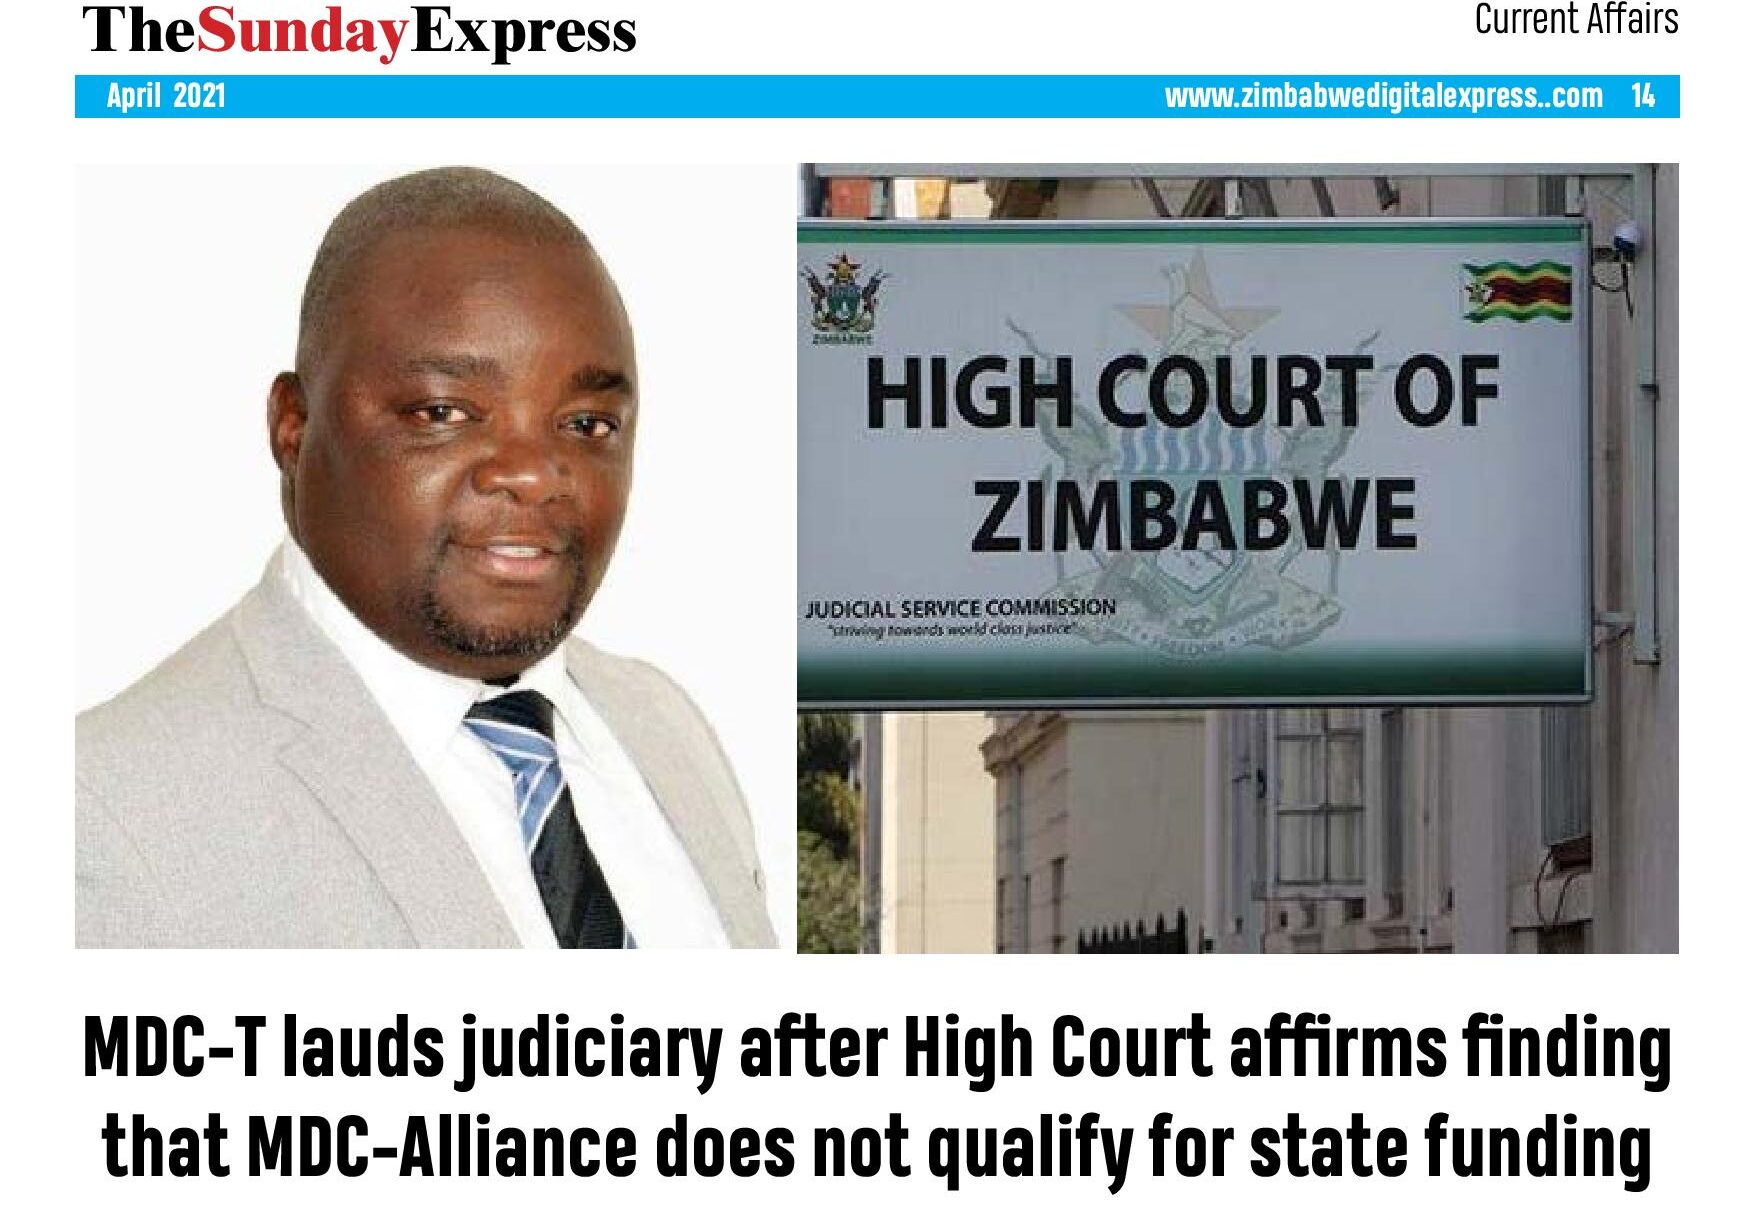 MDC-T lauds judiciary after High Court affirms finding that MDC-Alliance does not qualify for state funding